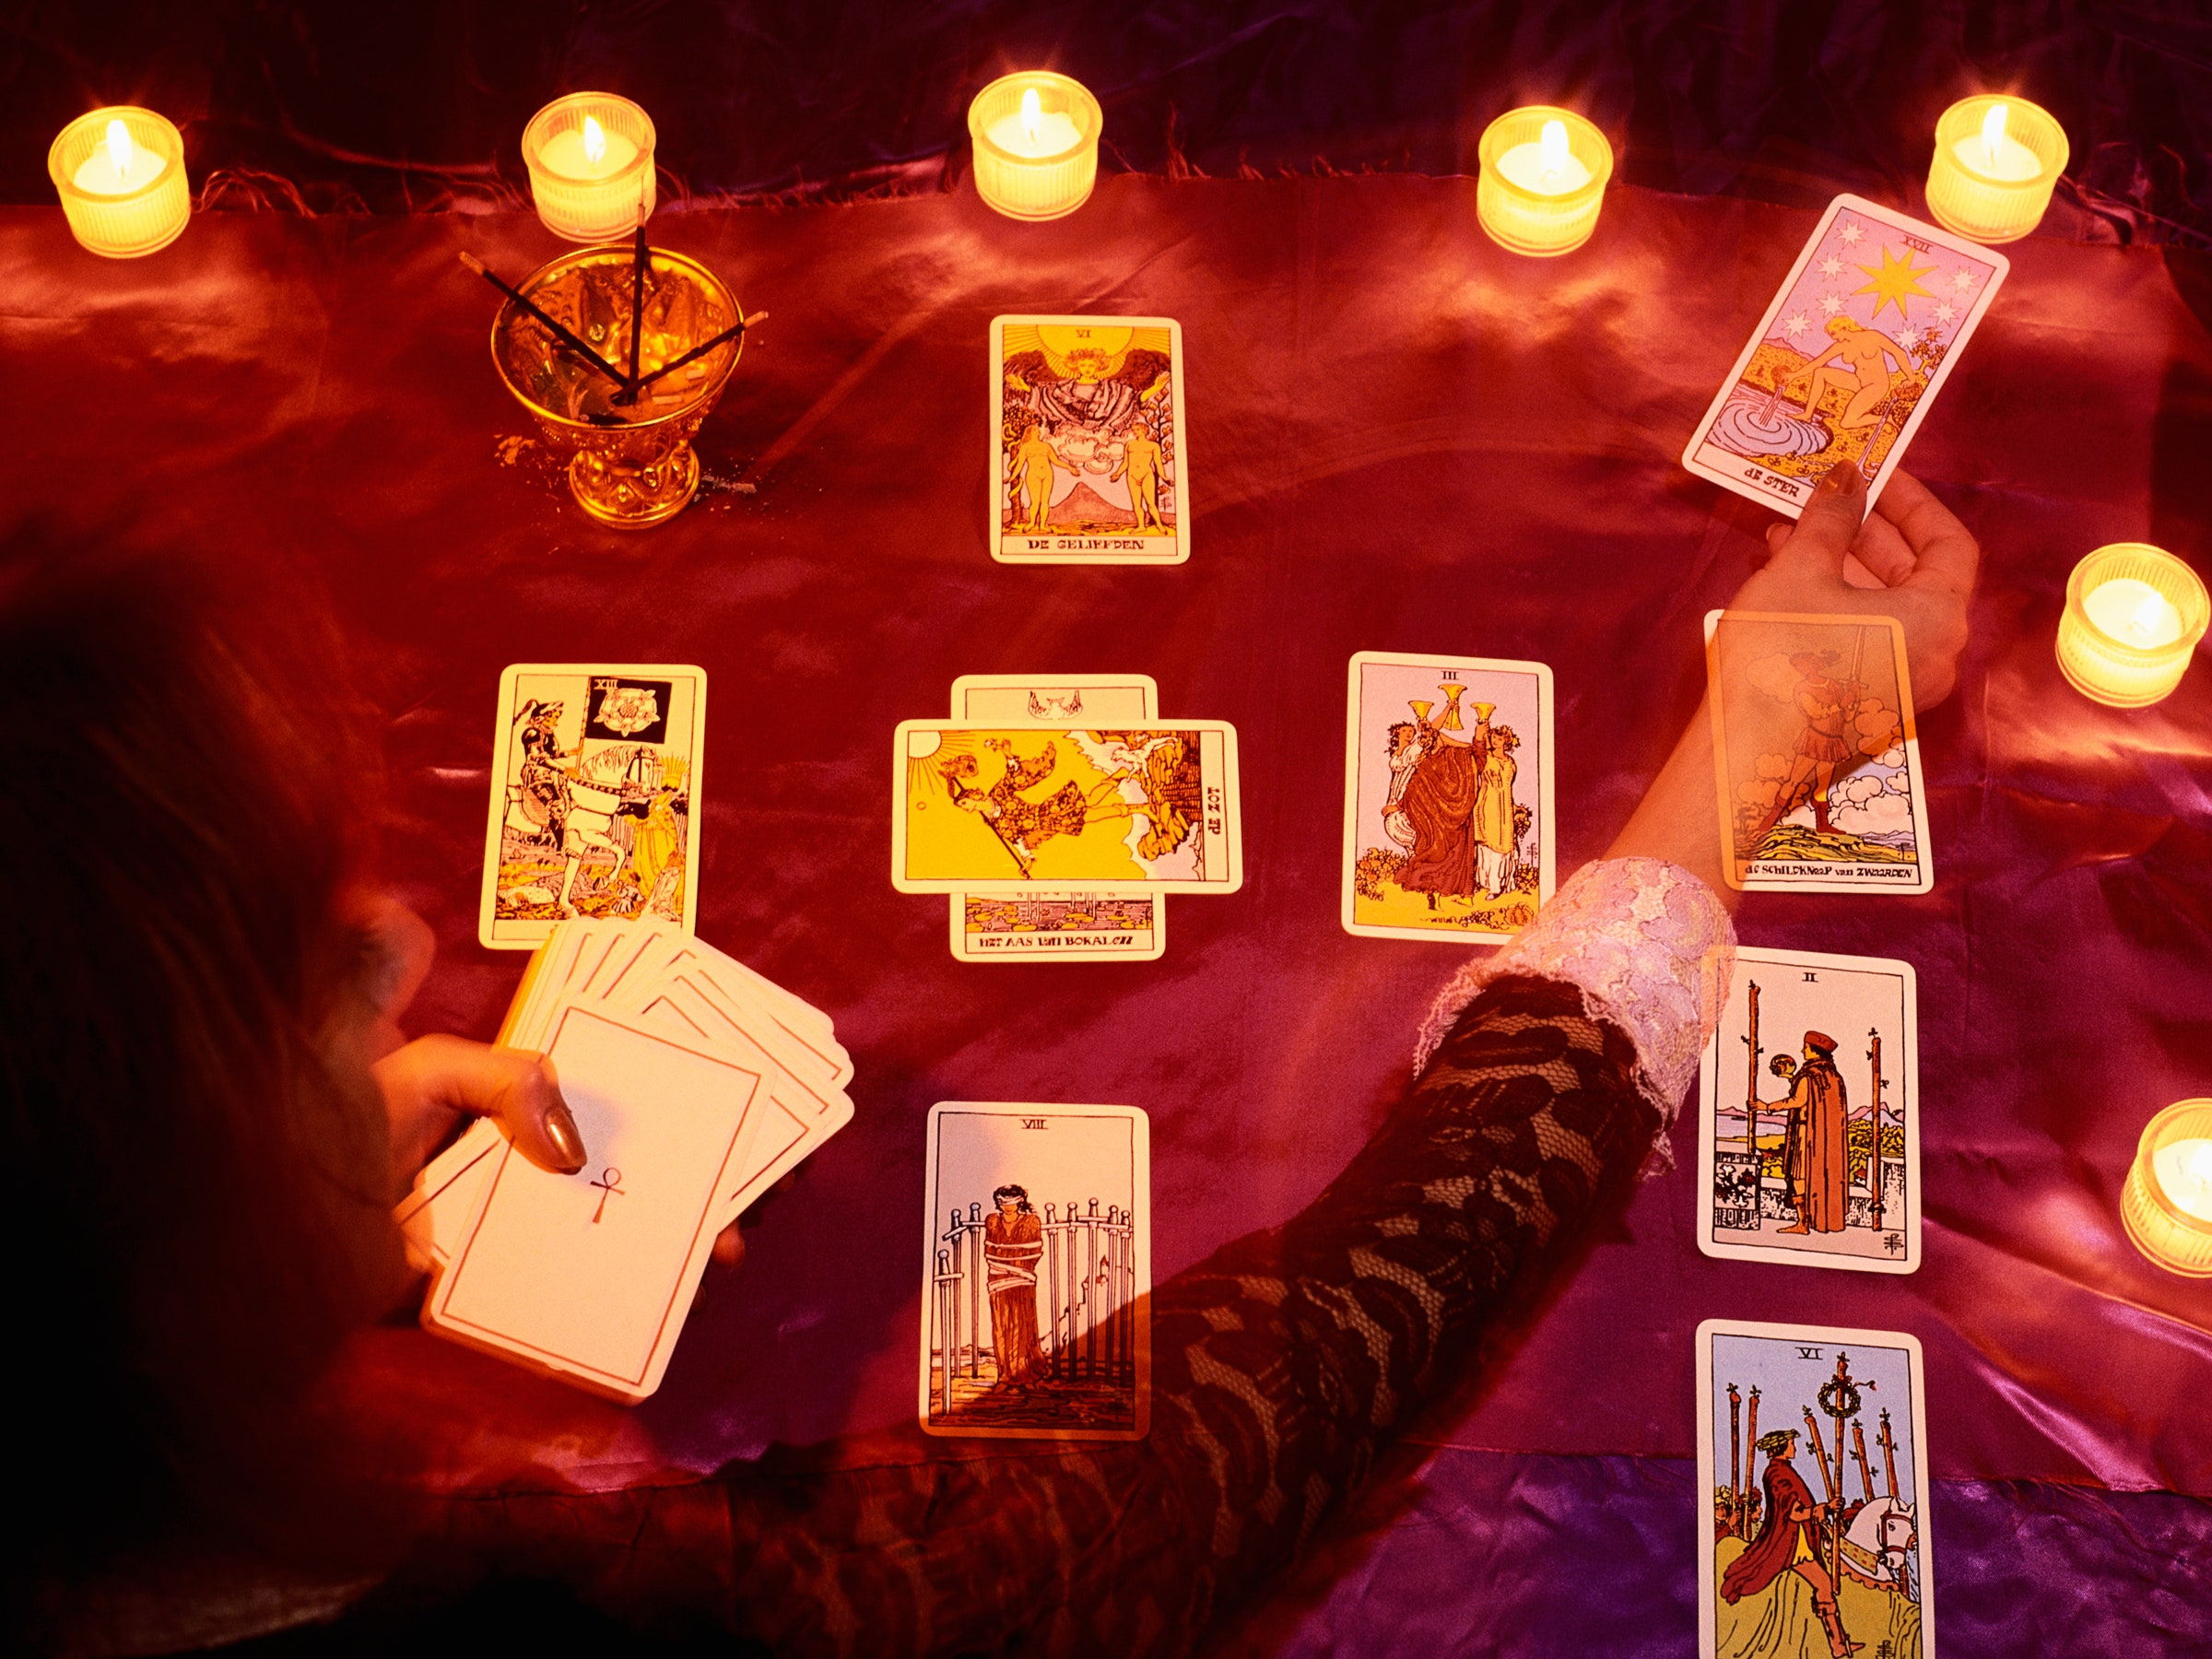 True facts about psychic abilities